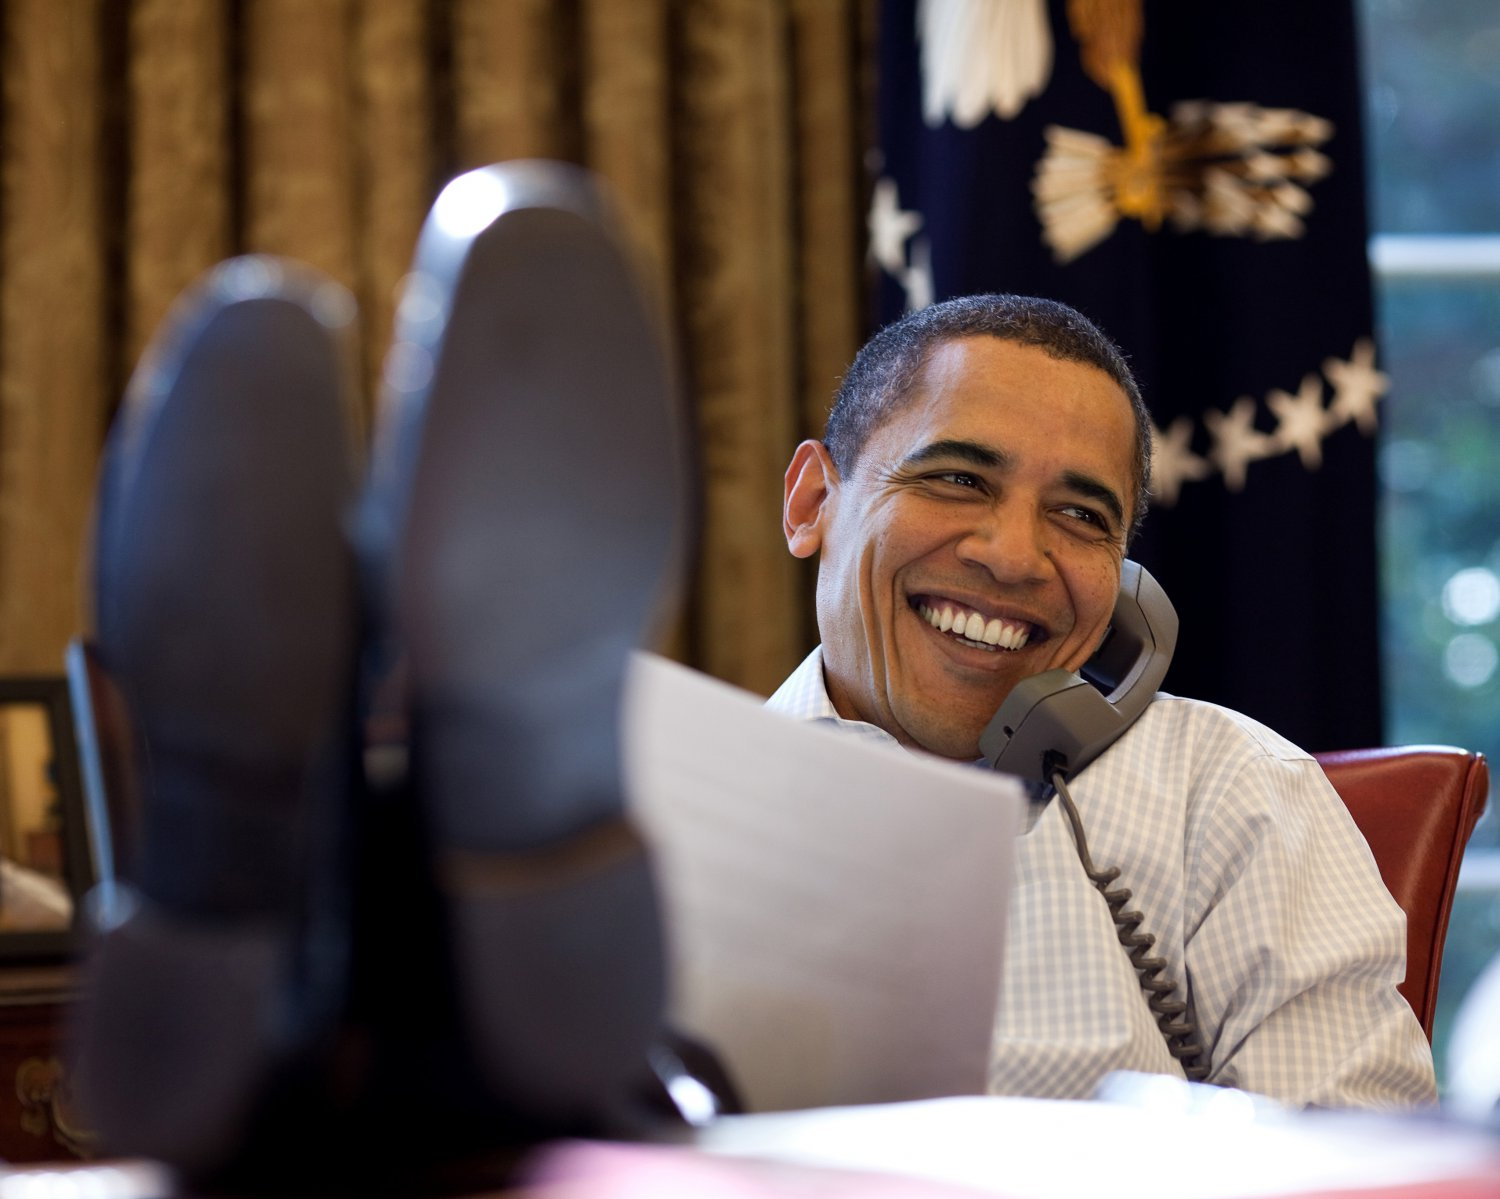 BARACK OBAMA ON CALL w/ RUSSIAN PRESIDENT IN THE OVAL OFFICE 8X10 PHOTO (ZY-379)